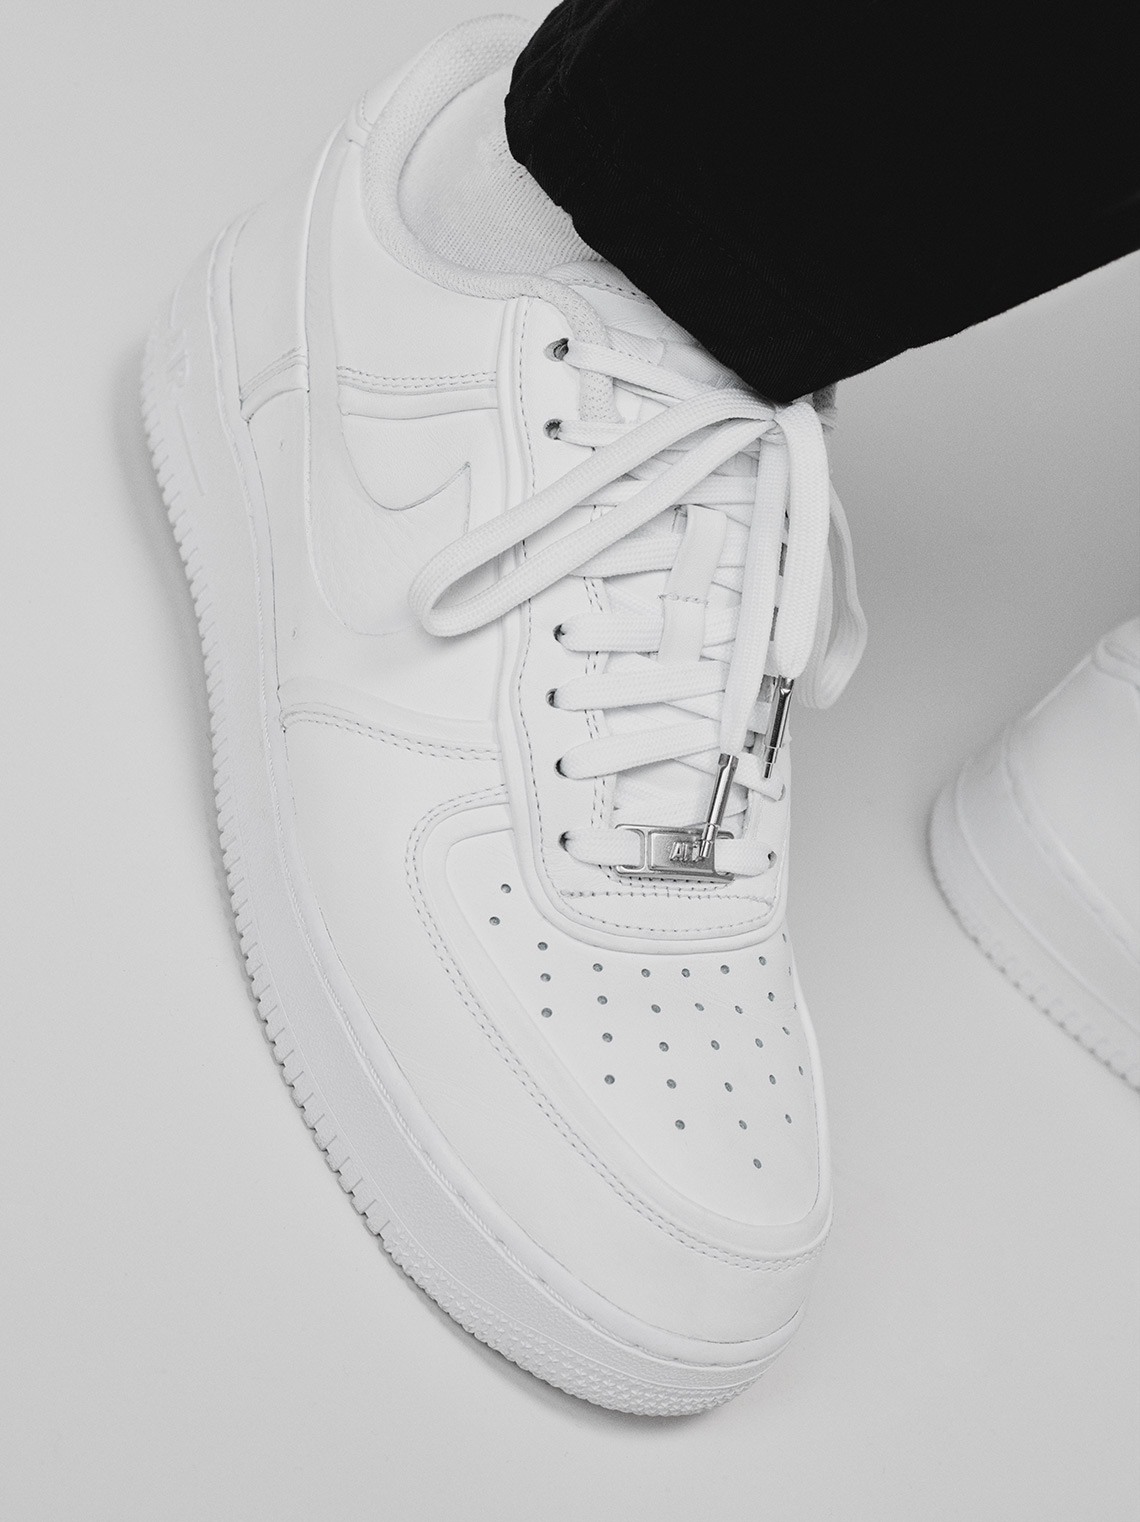 a10f600aa7ab9 ... RTW Fall 2018 show back in February, the Cali-based creative is  actually adding truth to the talk with a new take on the ever-iconic Air  Force 1 Low.